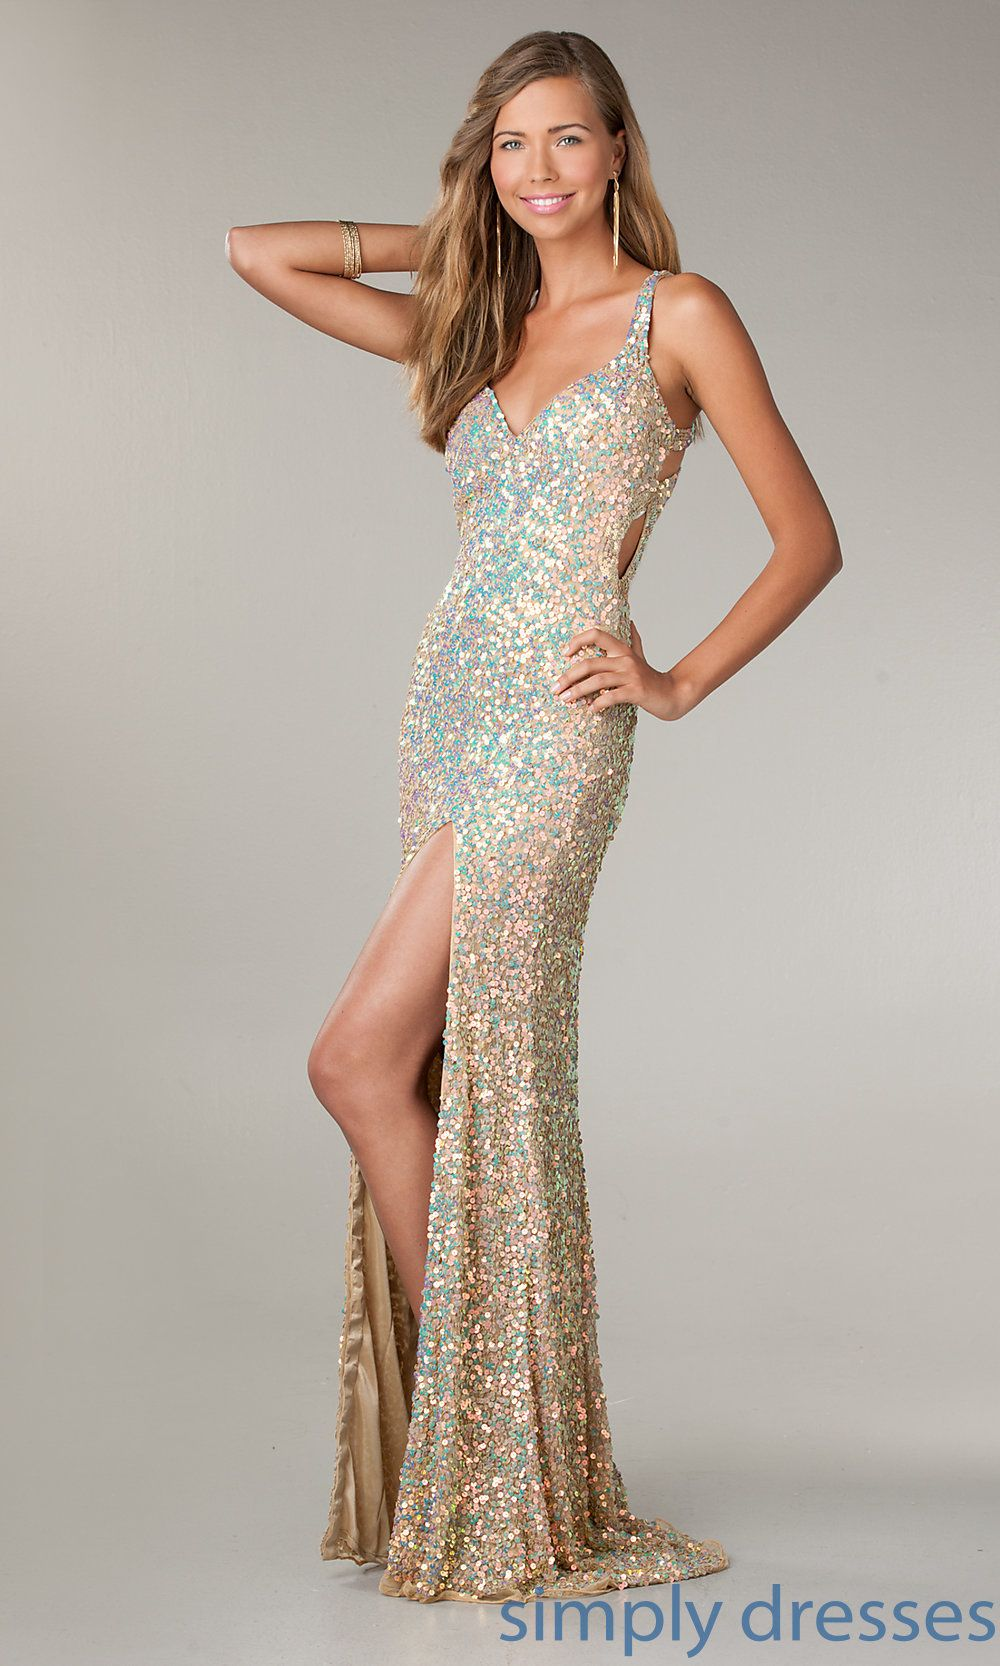 db3dacc1fa Shop Simply Dresses for Primavera formal gowns. Choose open back long  sequin dresses to dance at prom